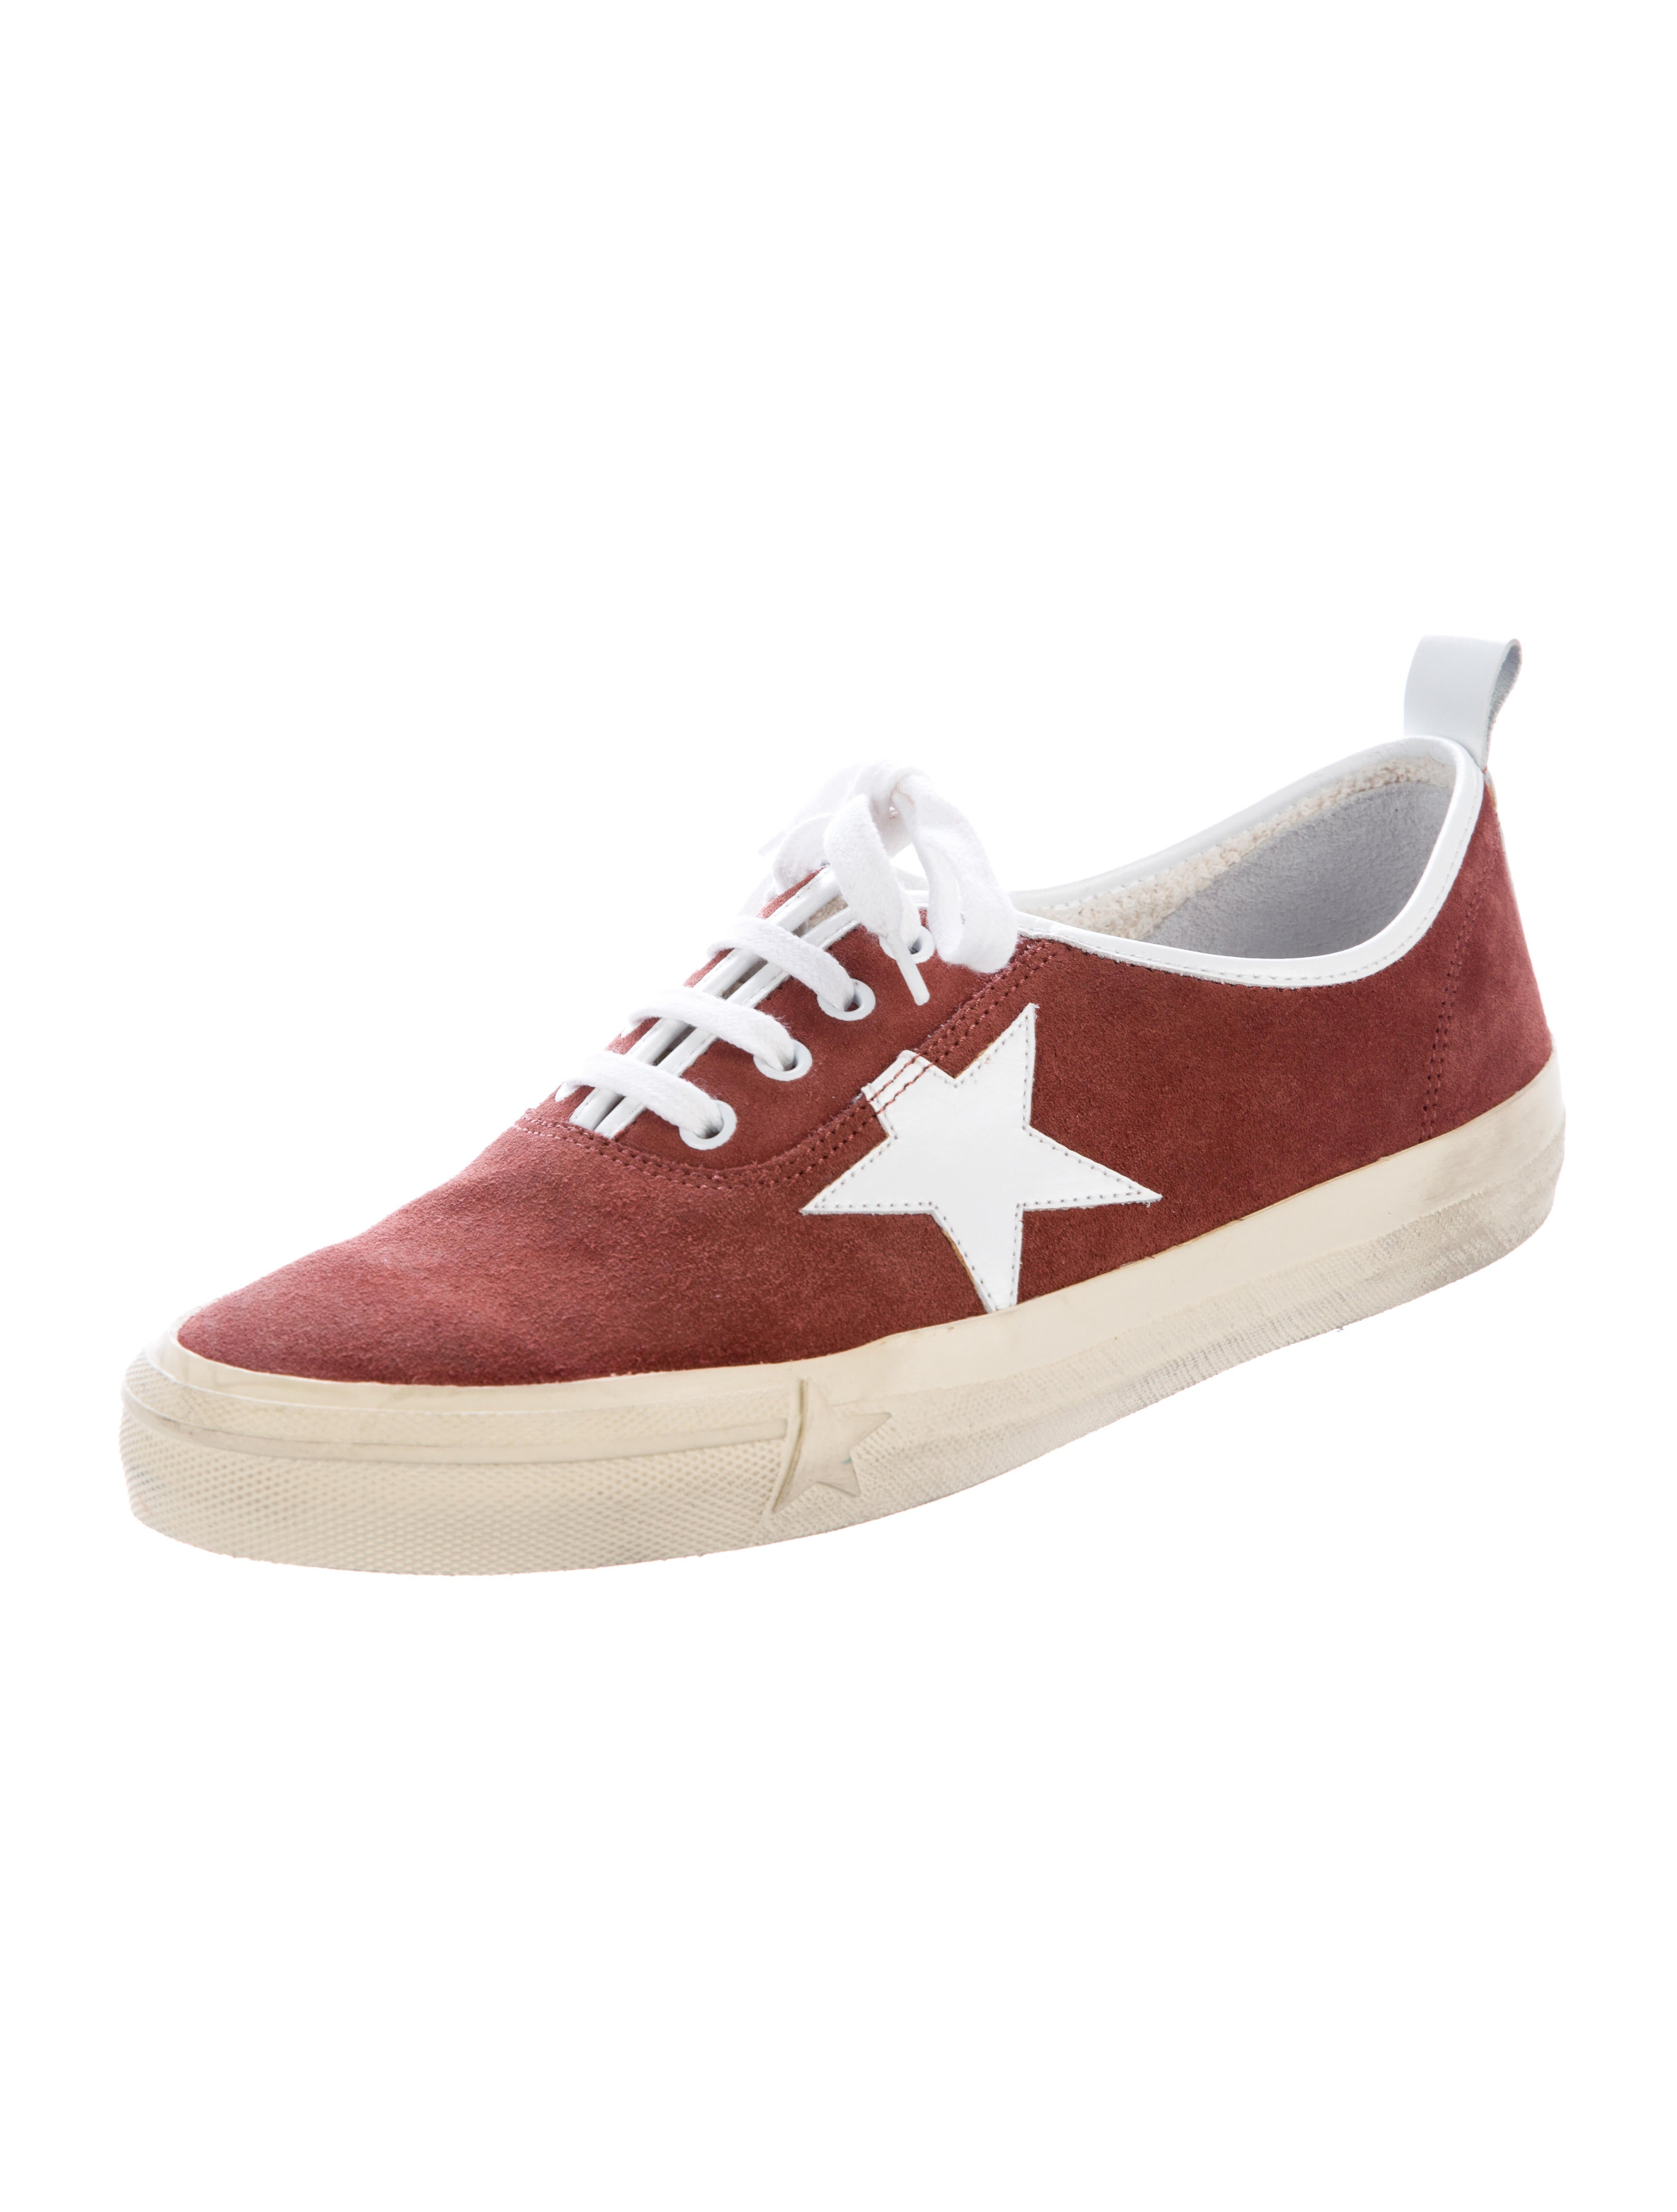 with mastercard sale online buy cheap outlet store Golden Goose Suede California Sneakers w/ Tags discount reliable cheap sale shop for F9B2vcujFl